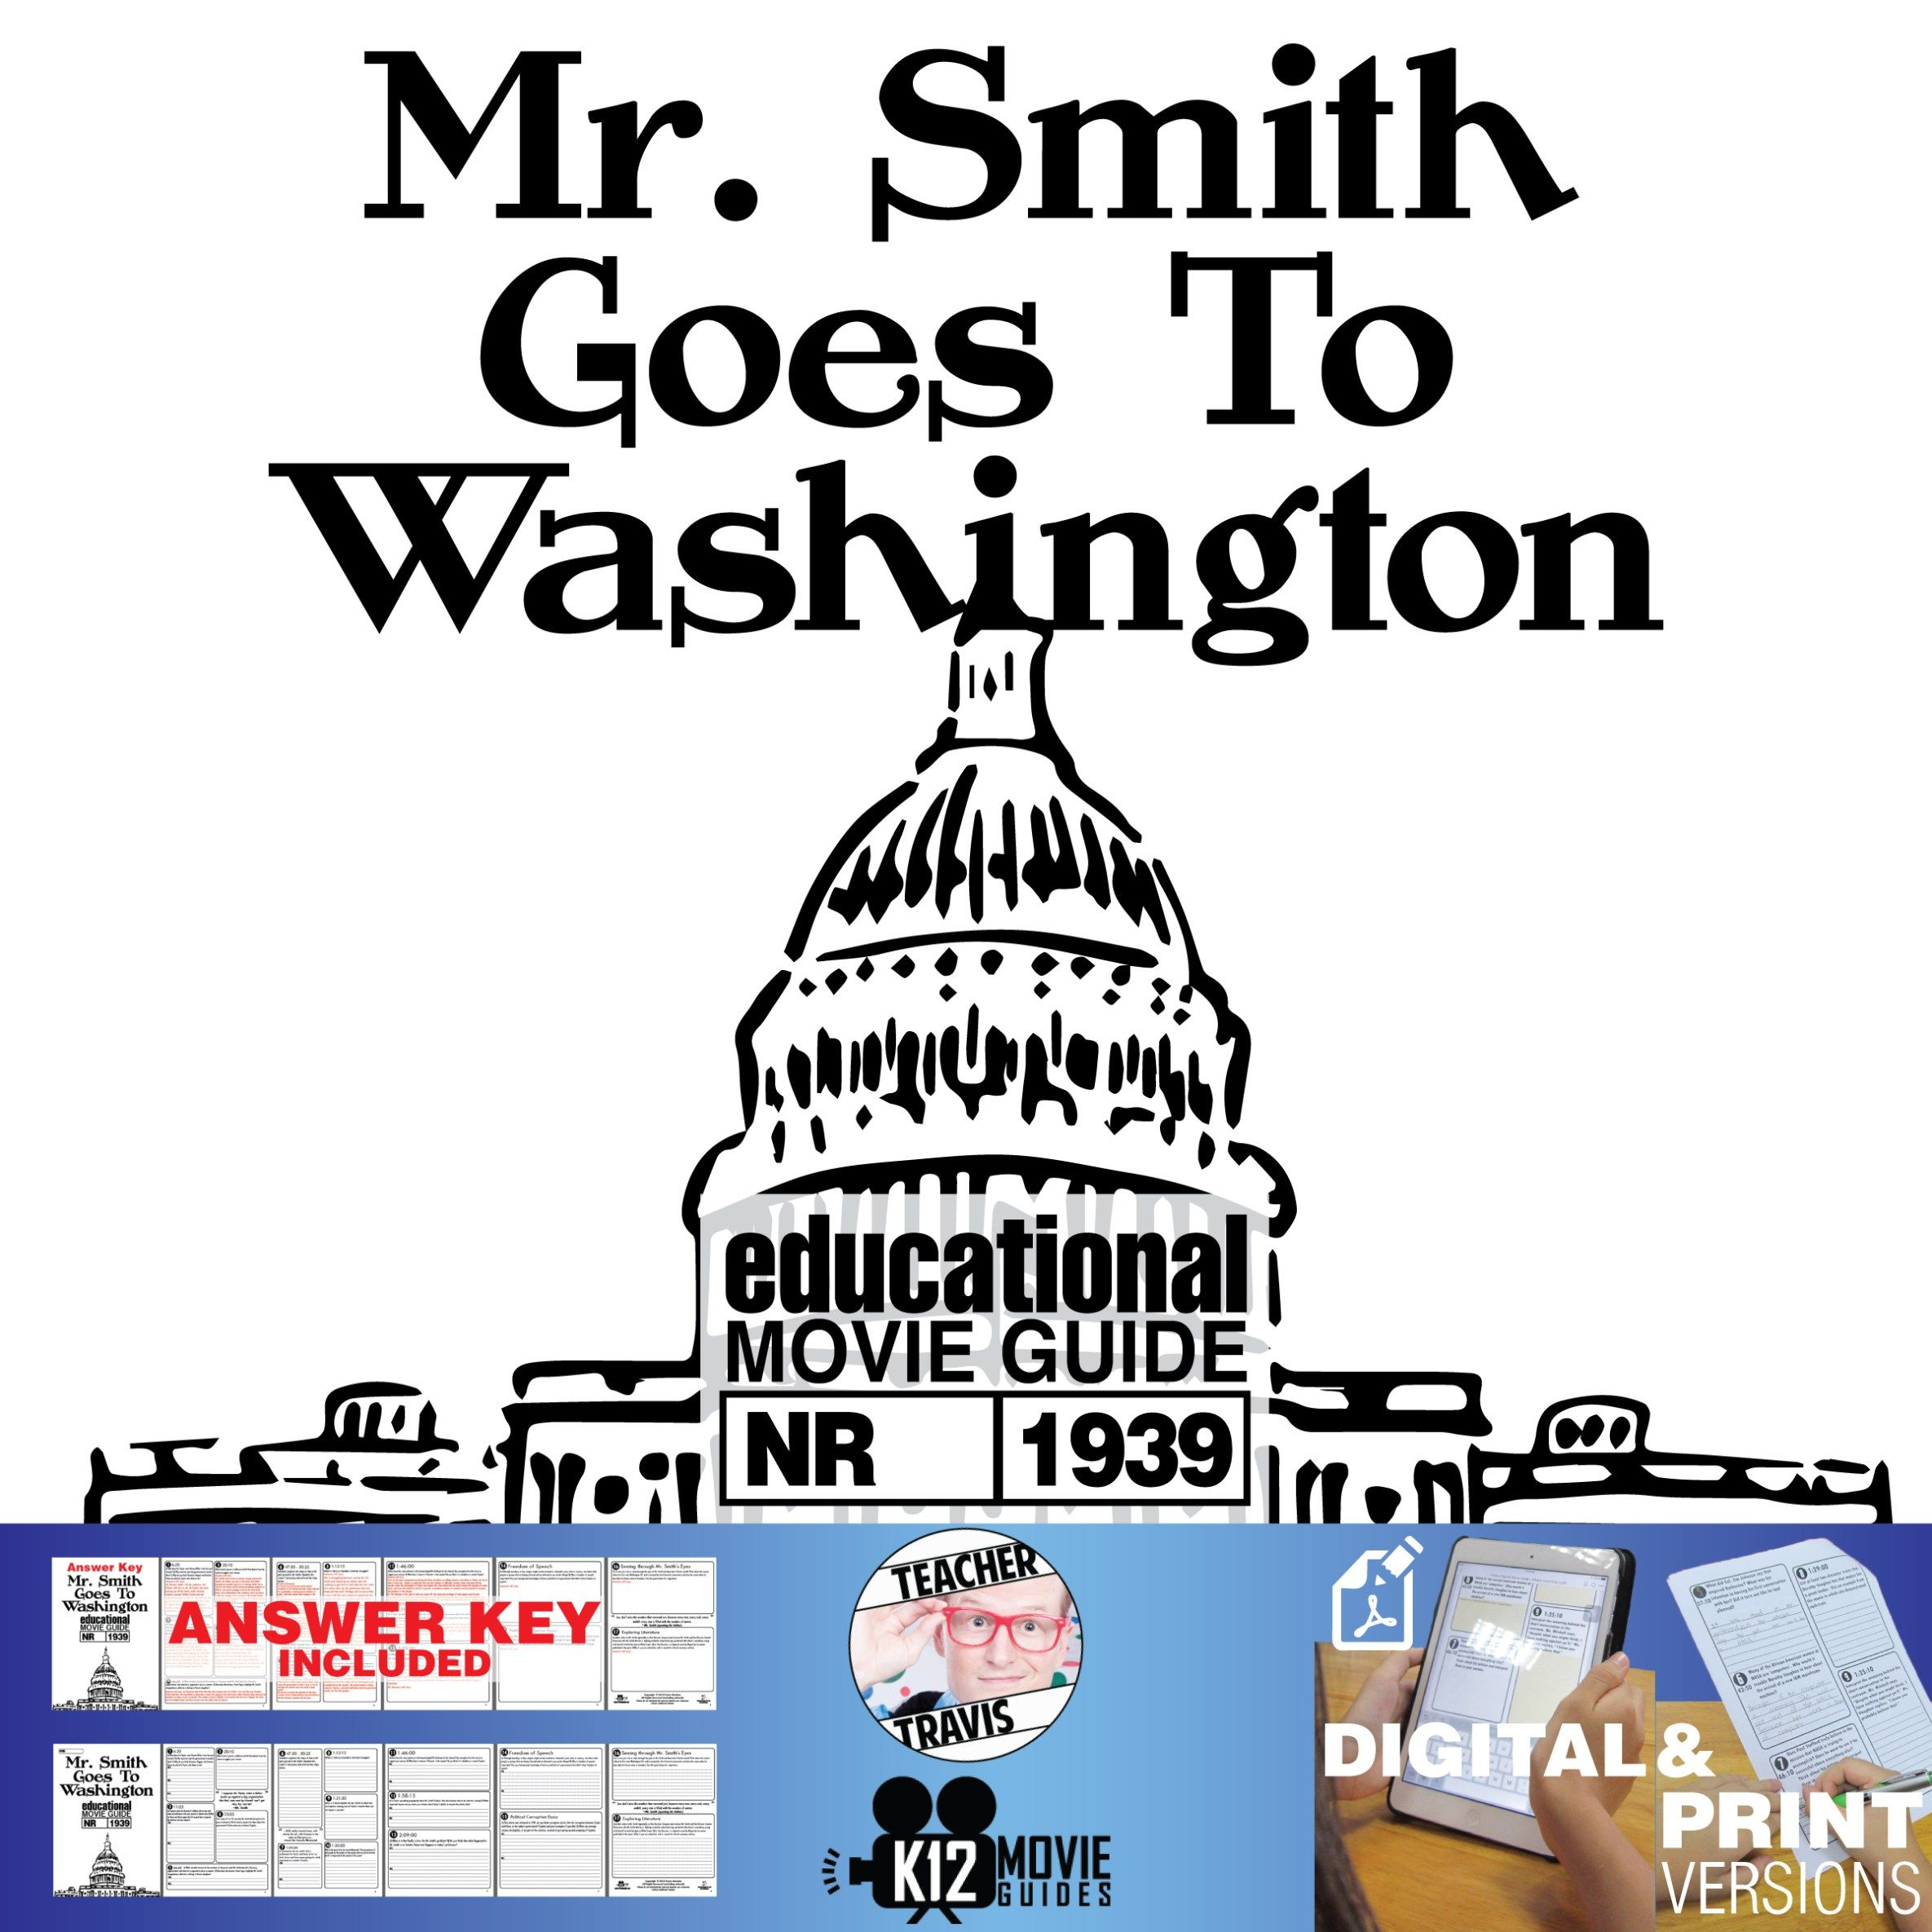 Mr Smith Goes To Washington Movie Guide